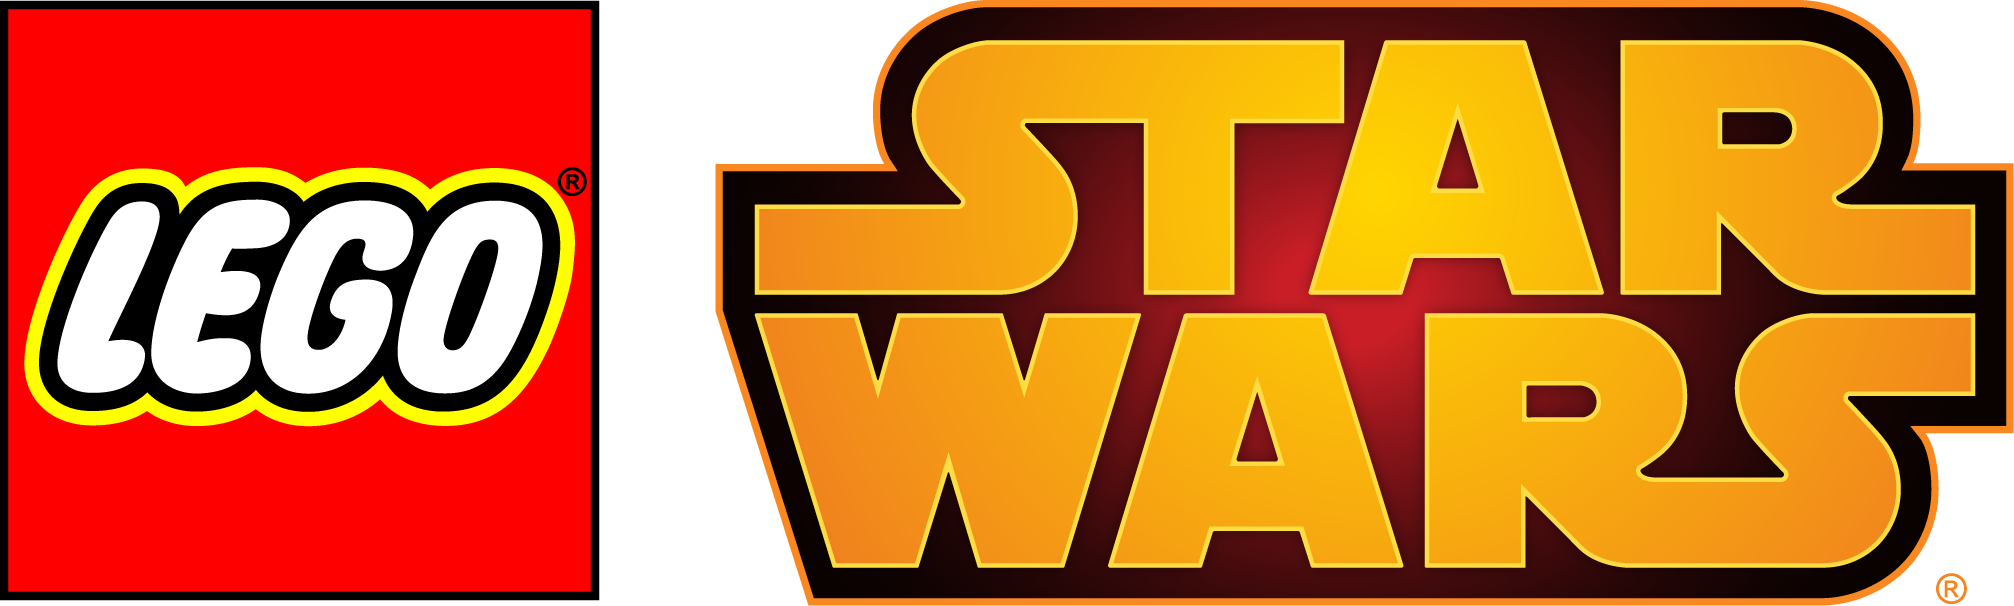 new star wars. Starwars clipart person lego